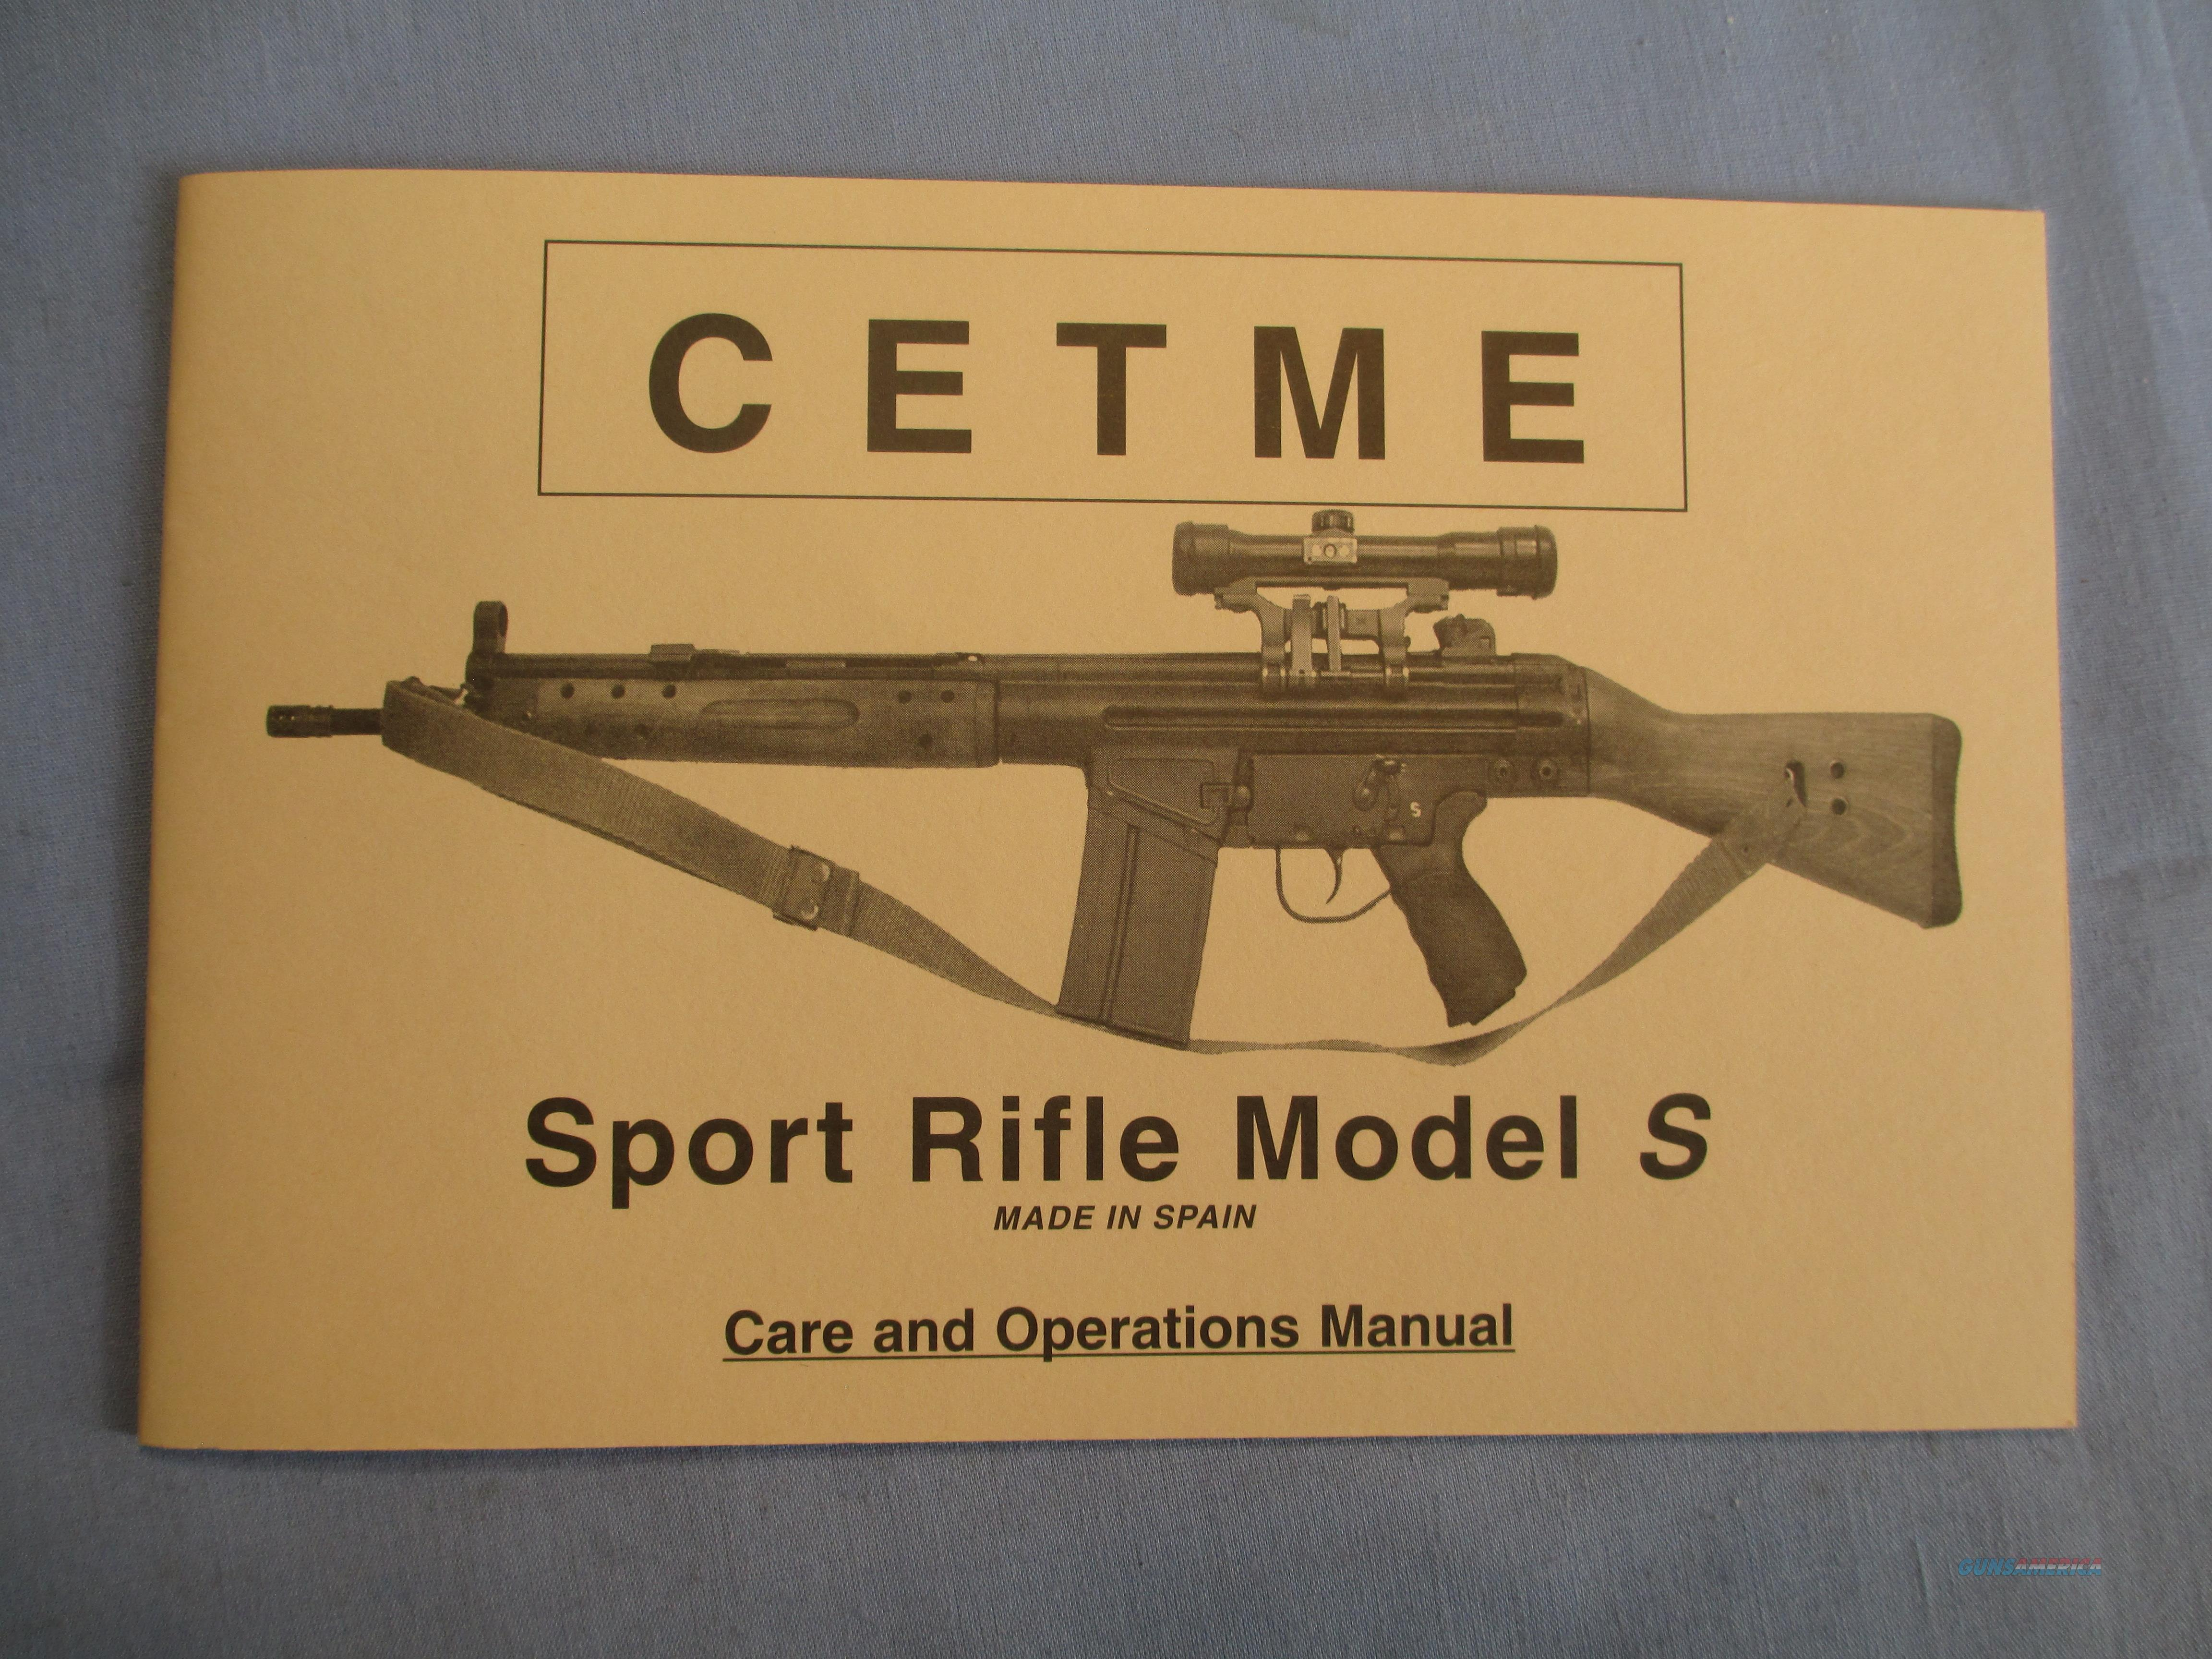 Cetme Rifle Schematic Trusted Wiring Diagrams Sks Modlel S Manual Handbook For Sale Schematics And Parts List